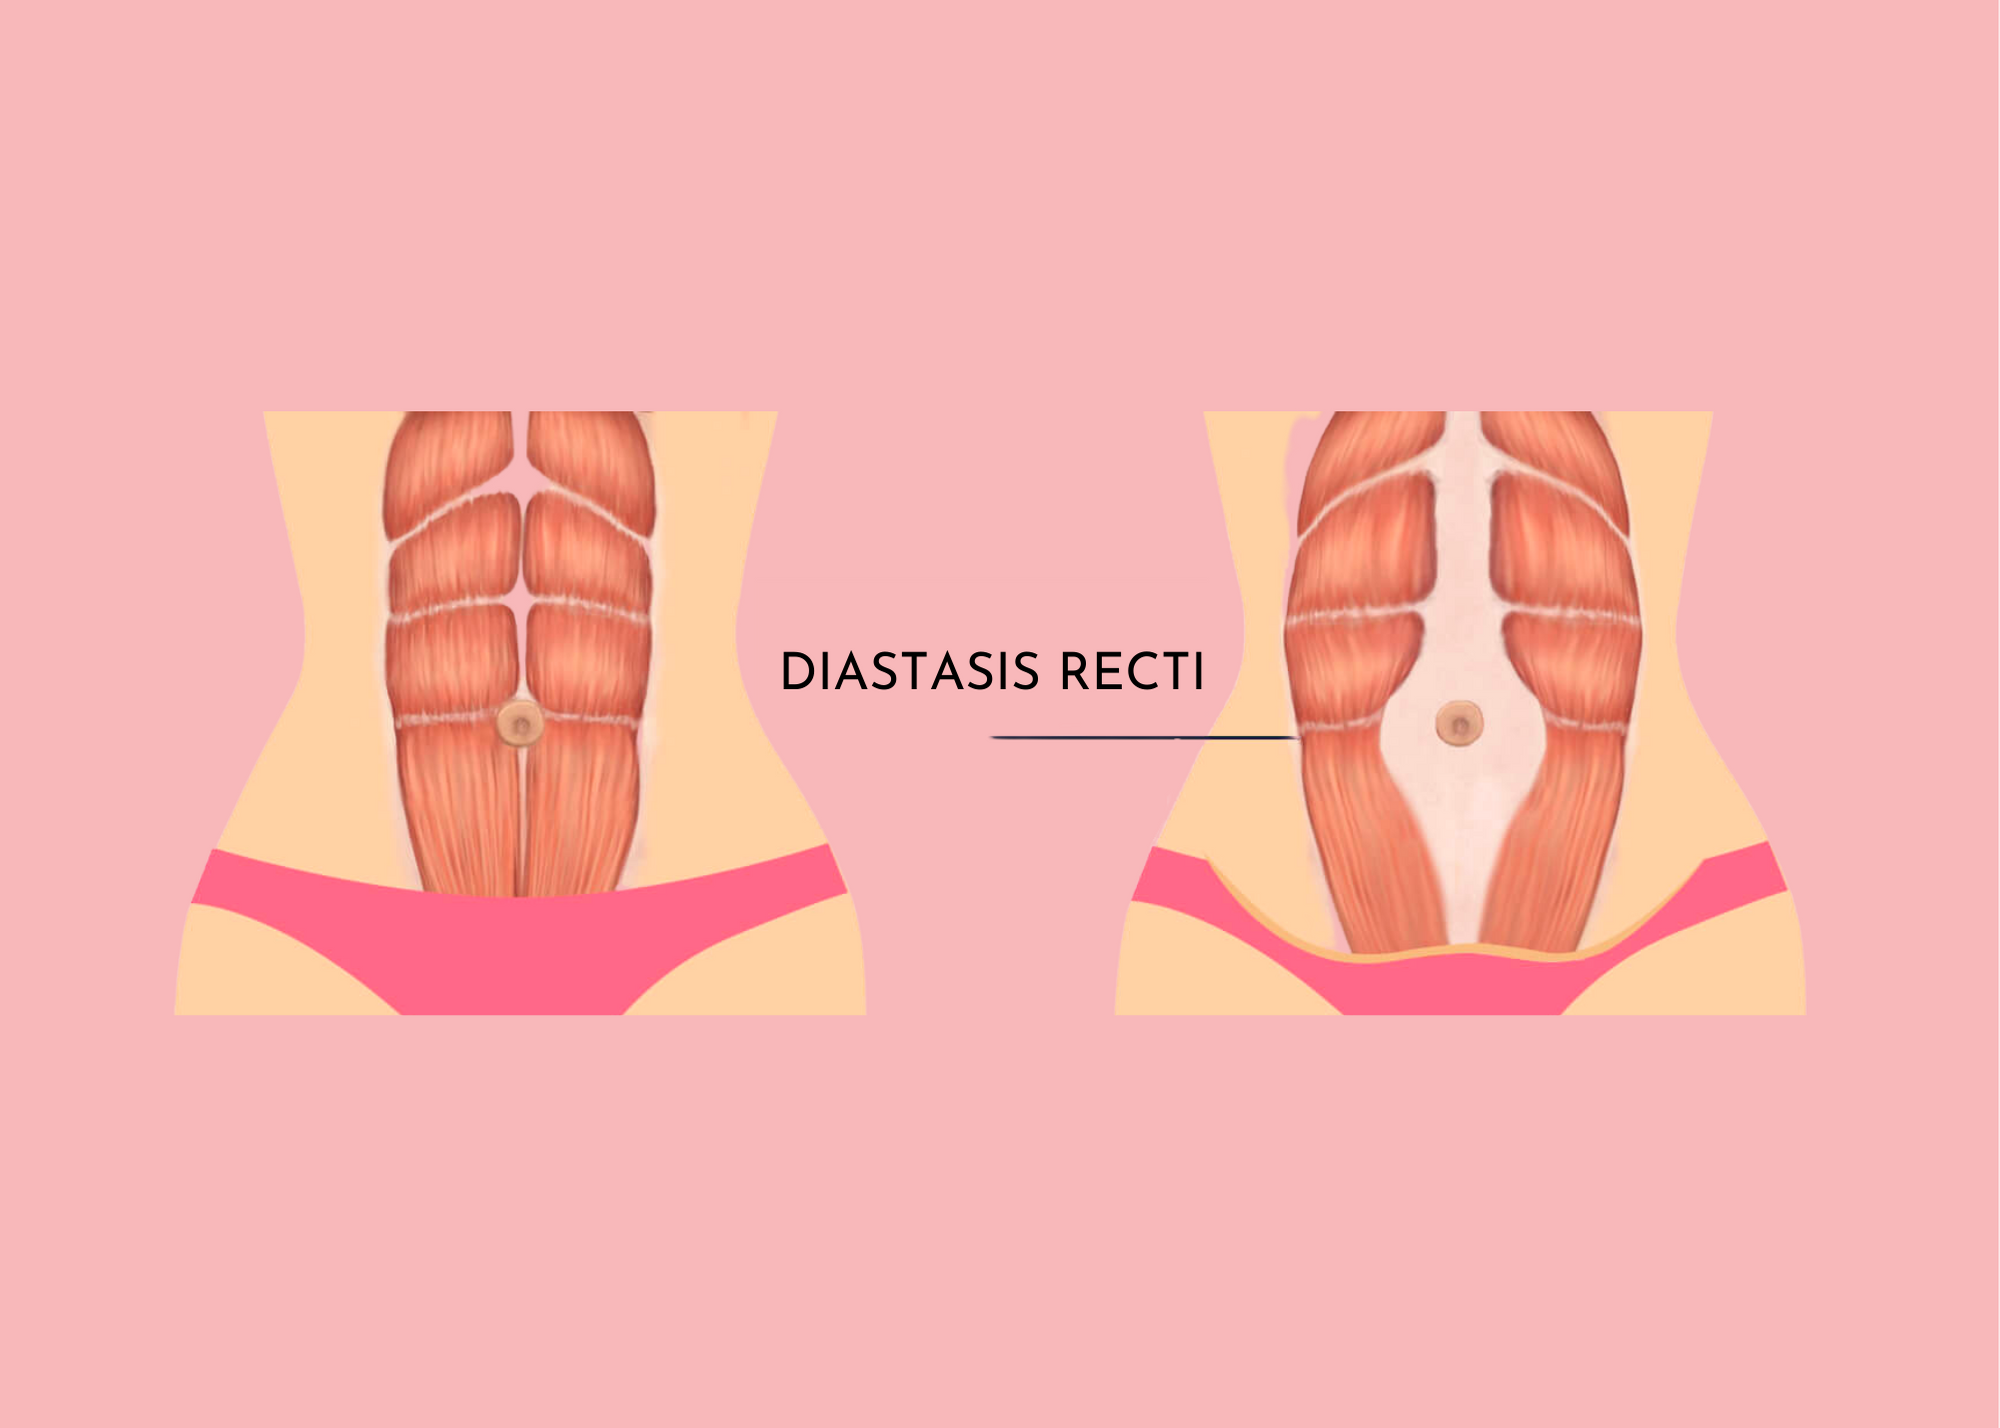 What Is Diastasis Recti & How Is It Treated?